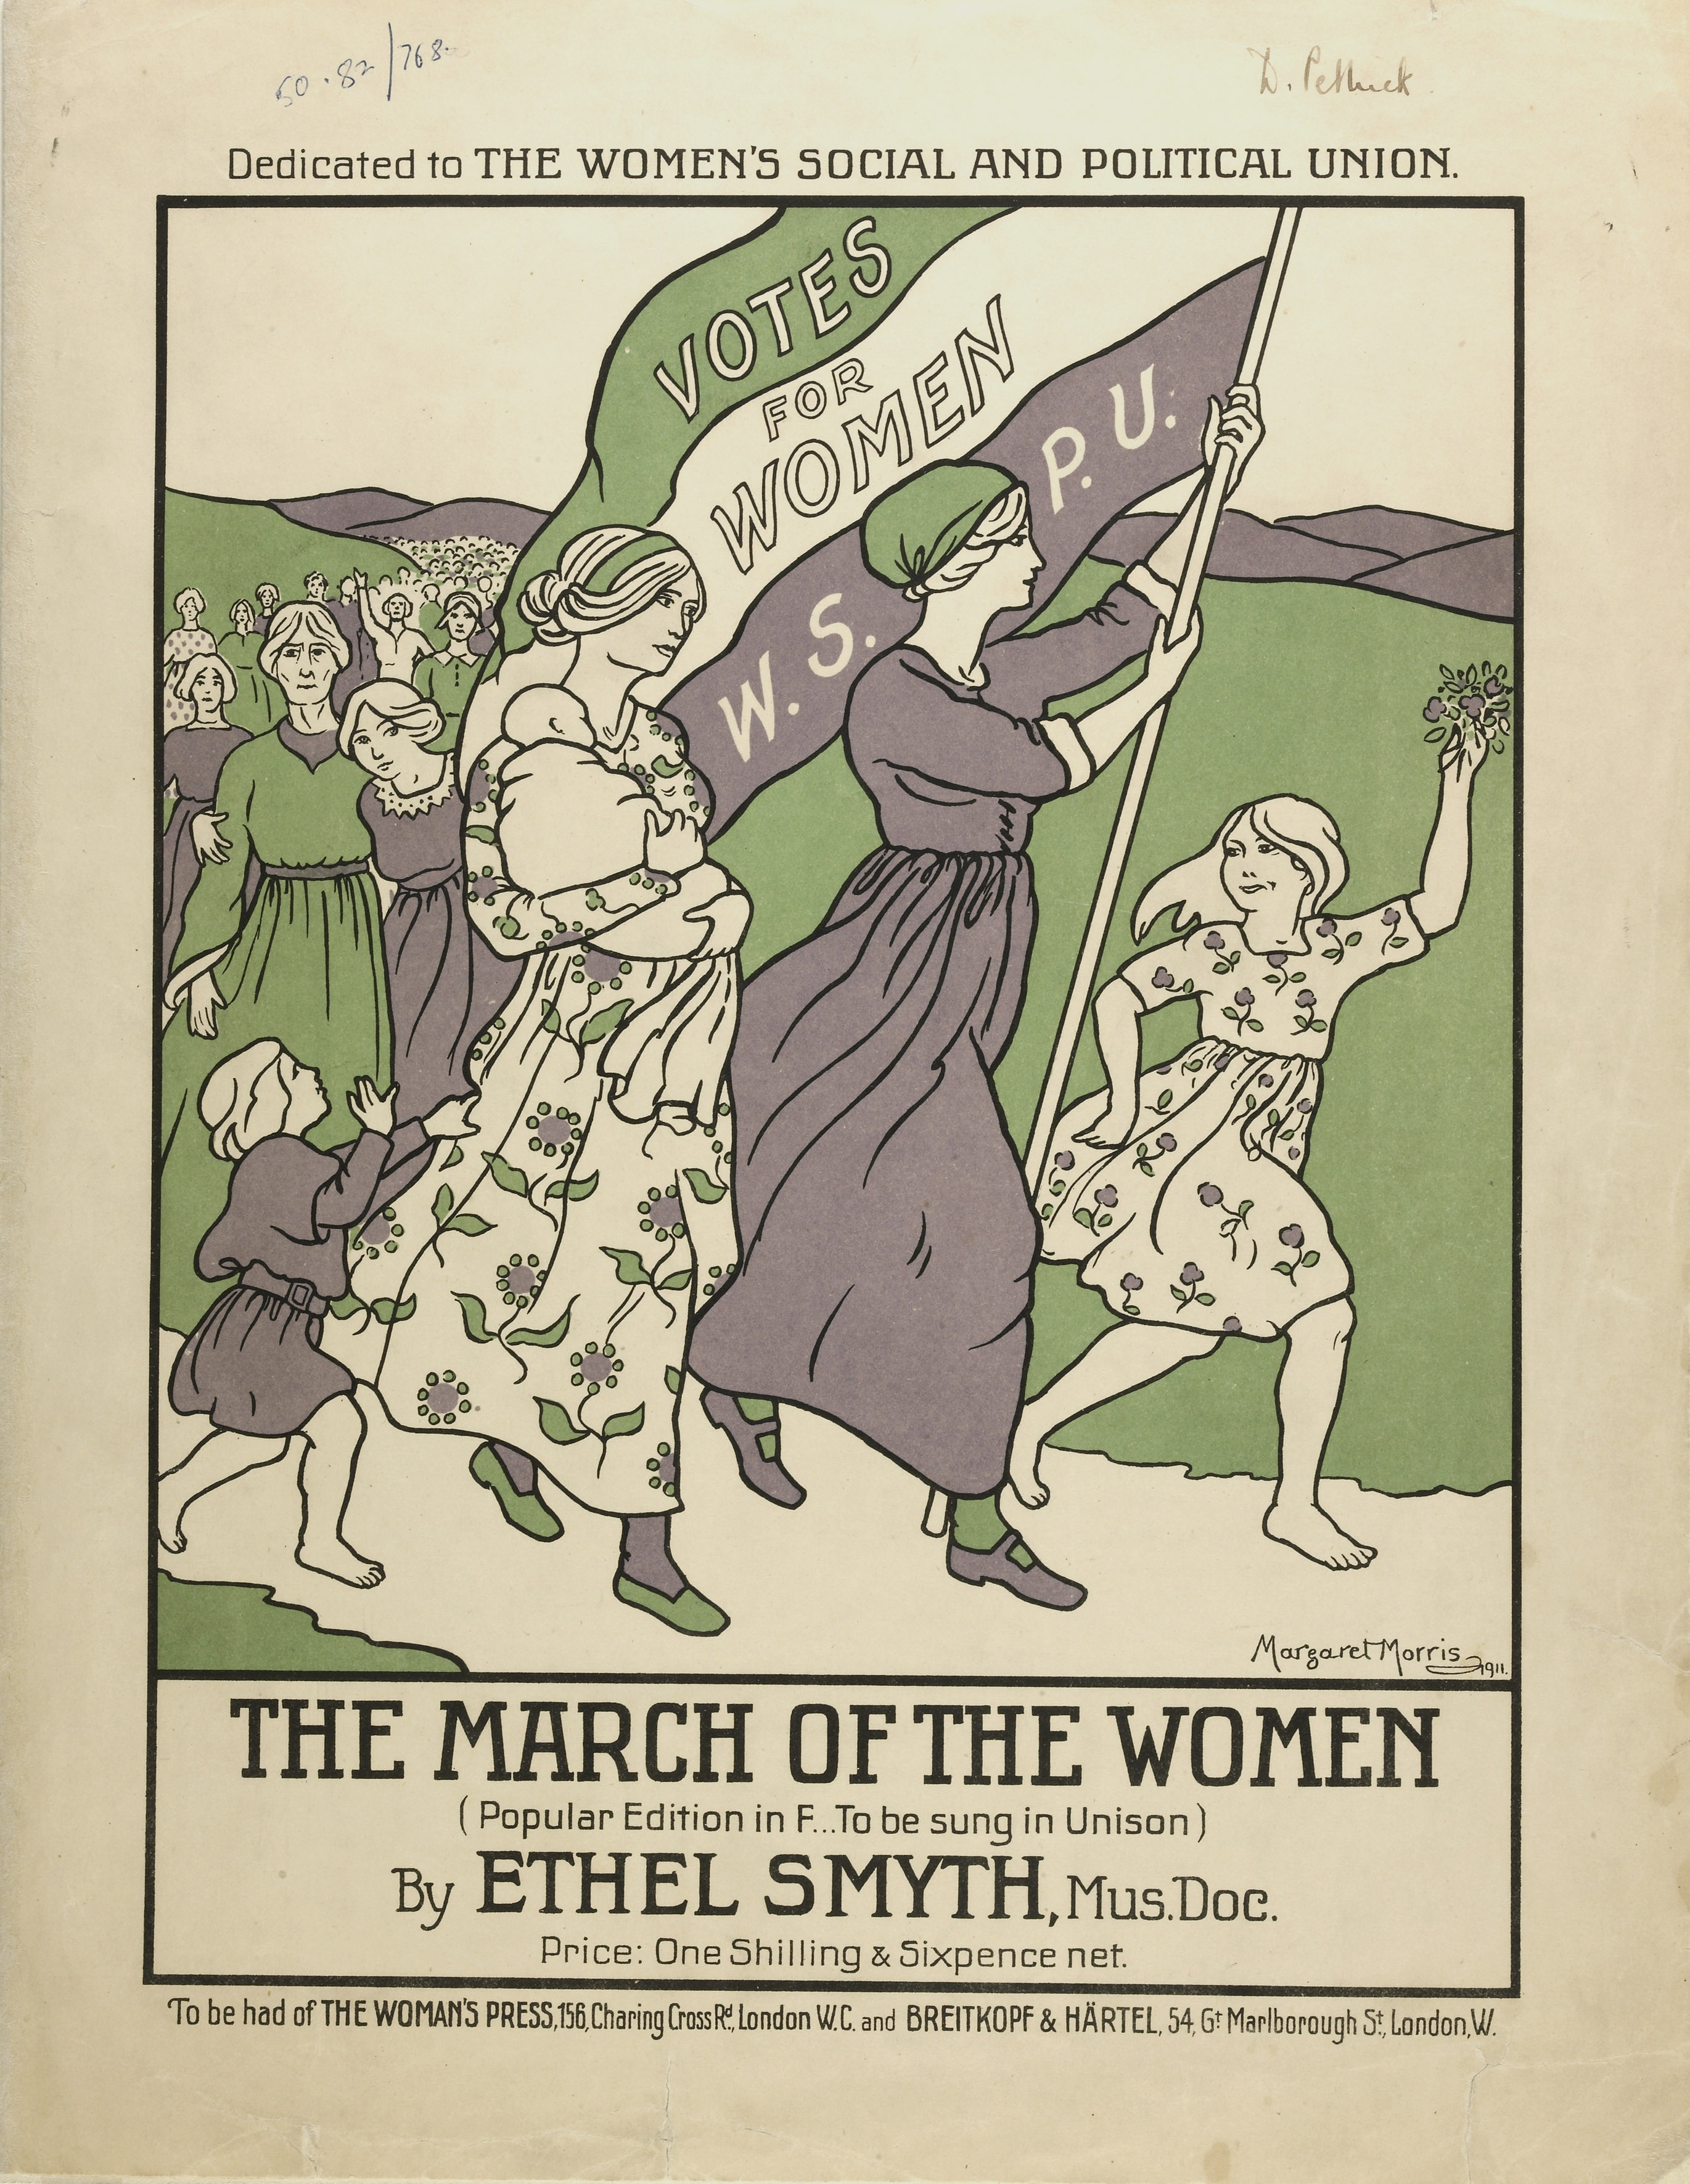 The March of the Women, 1911.